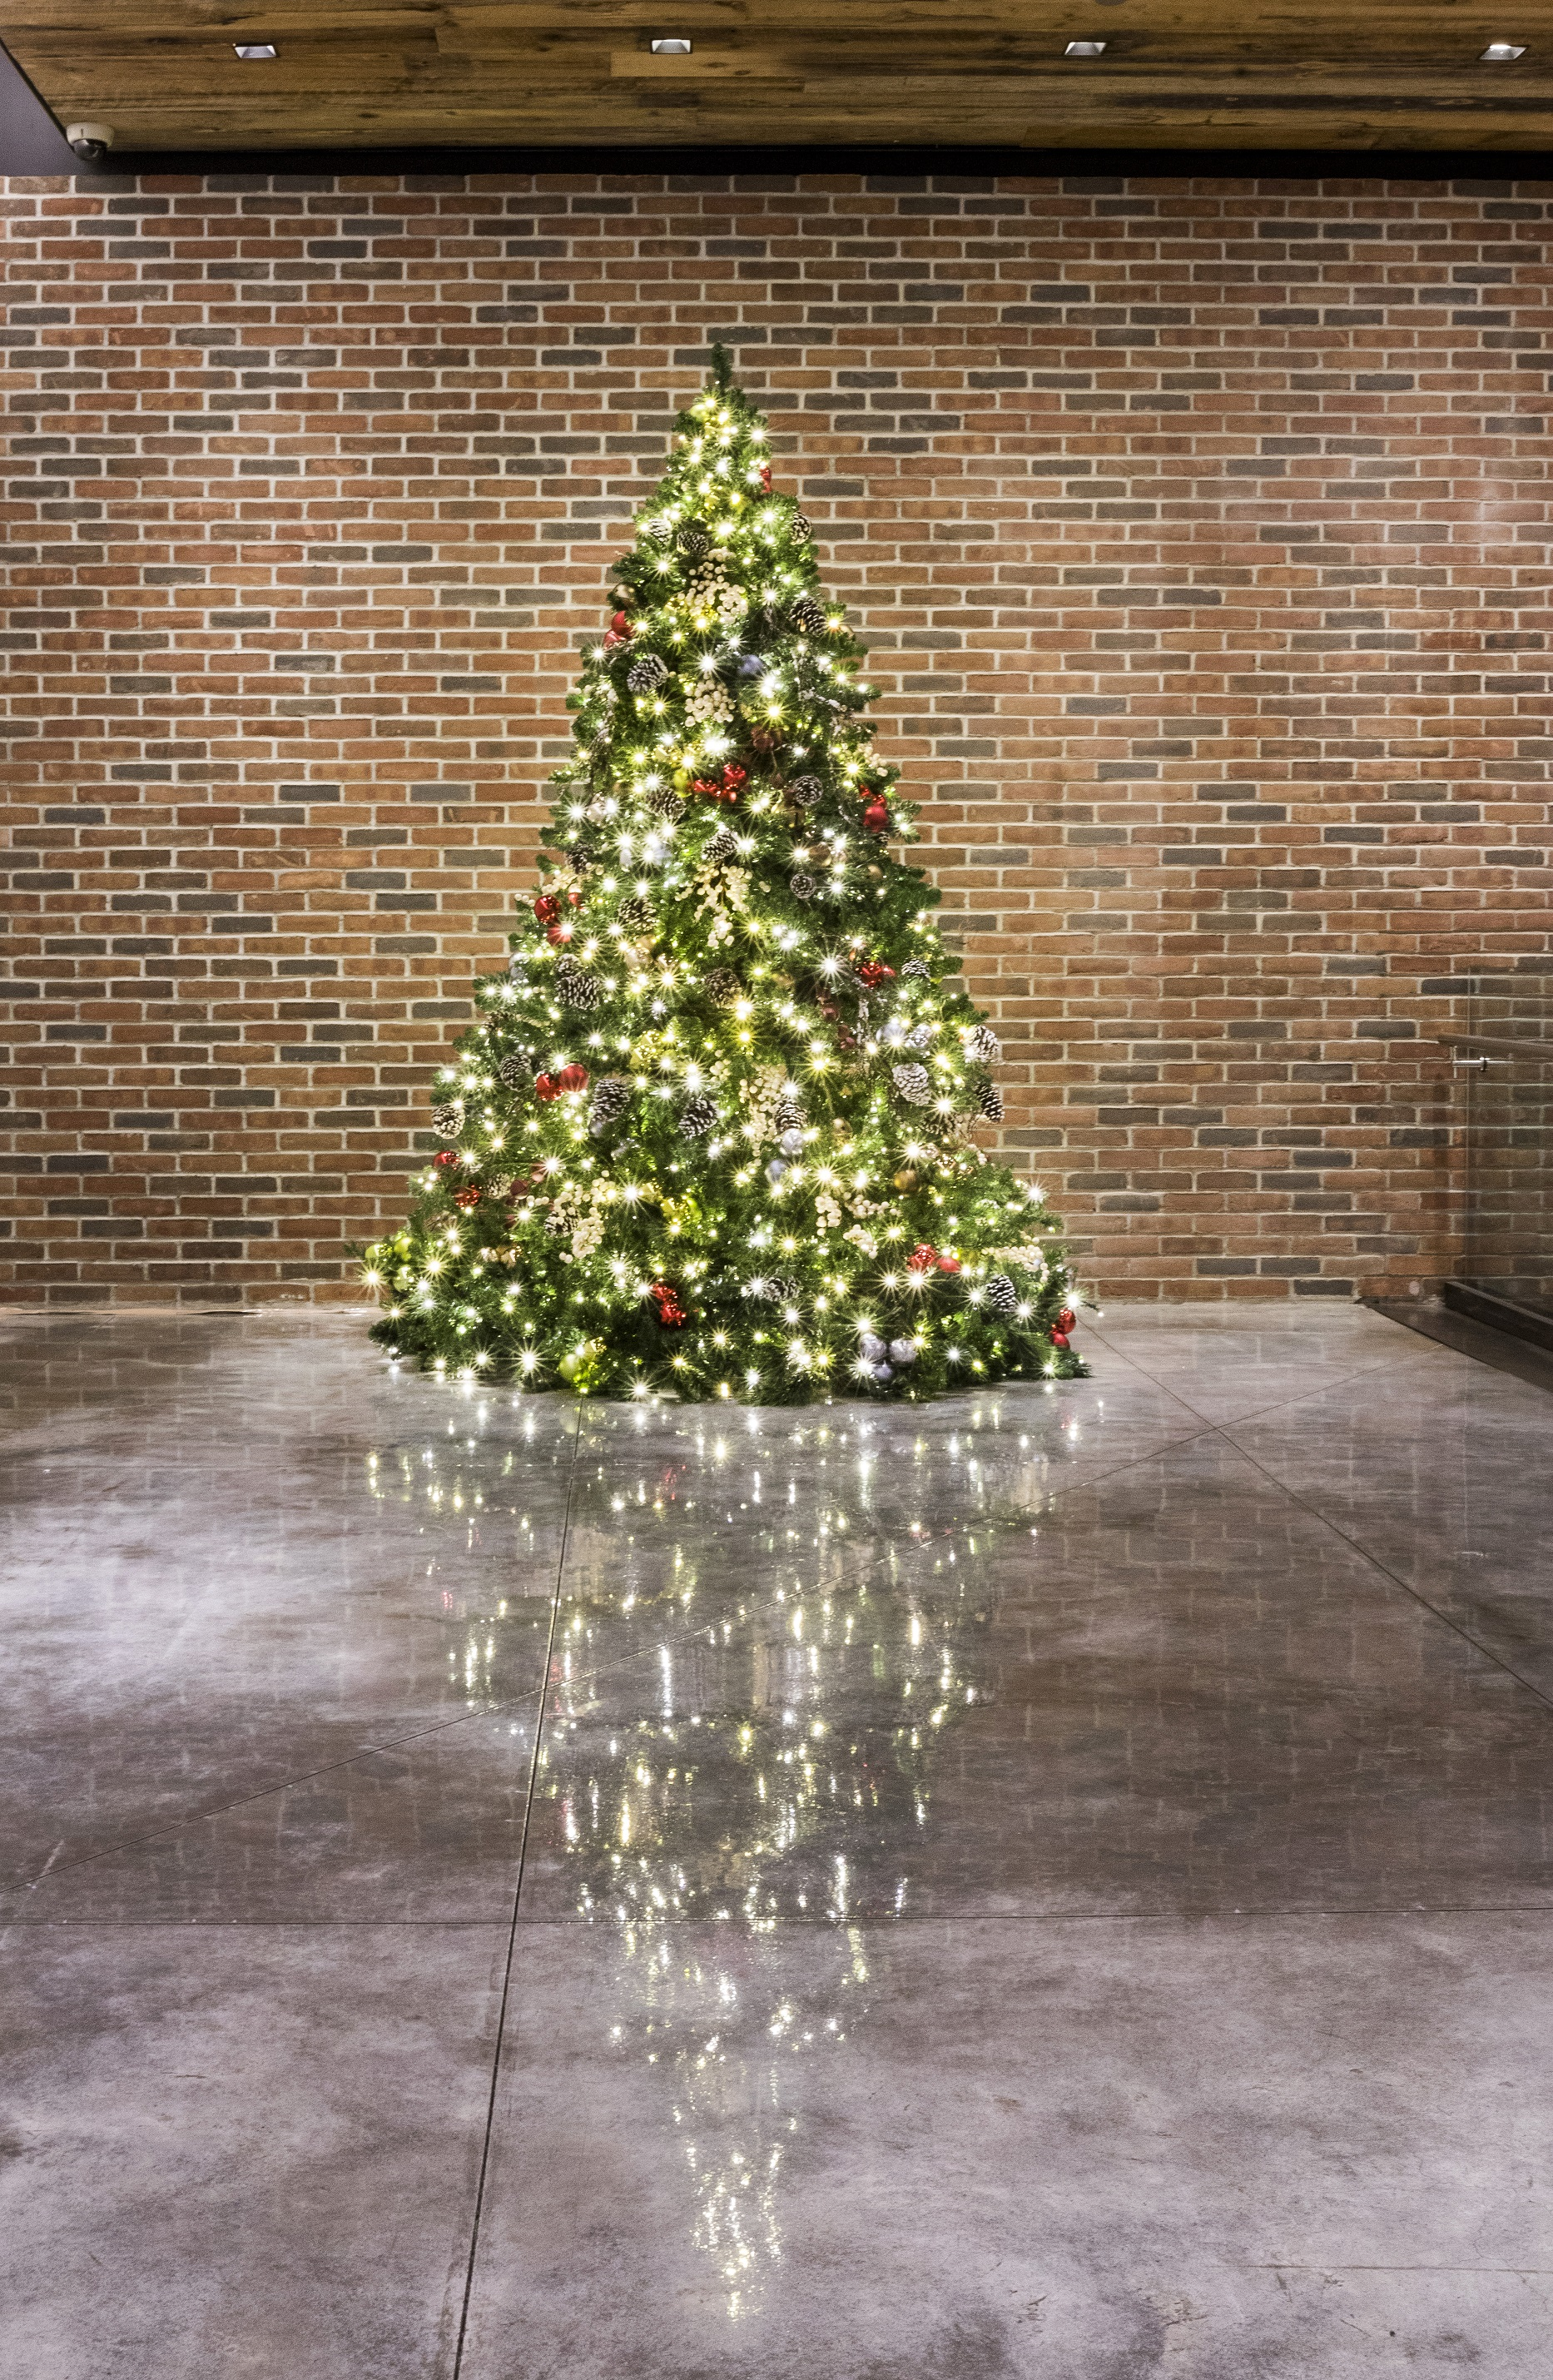 A brick façade, in combination with polished concrete floors, creates the perfect stage for this evergreen tree.